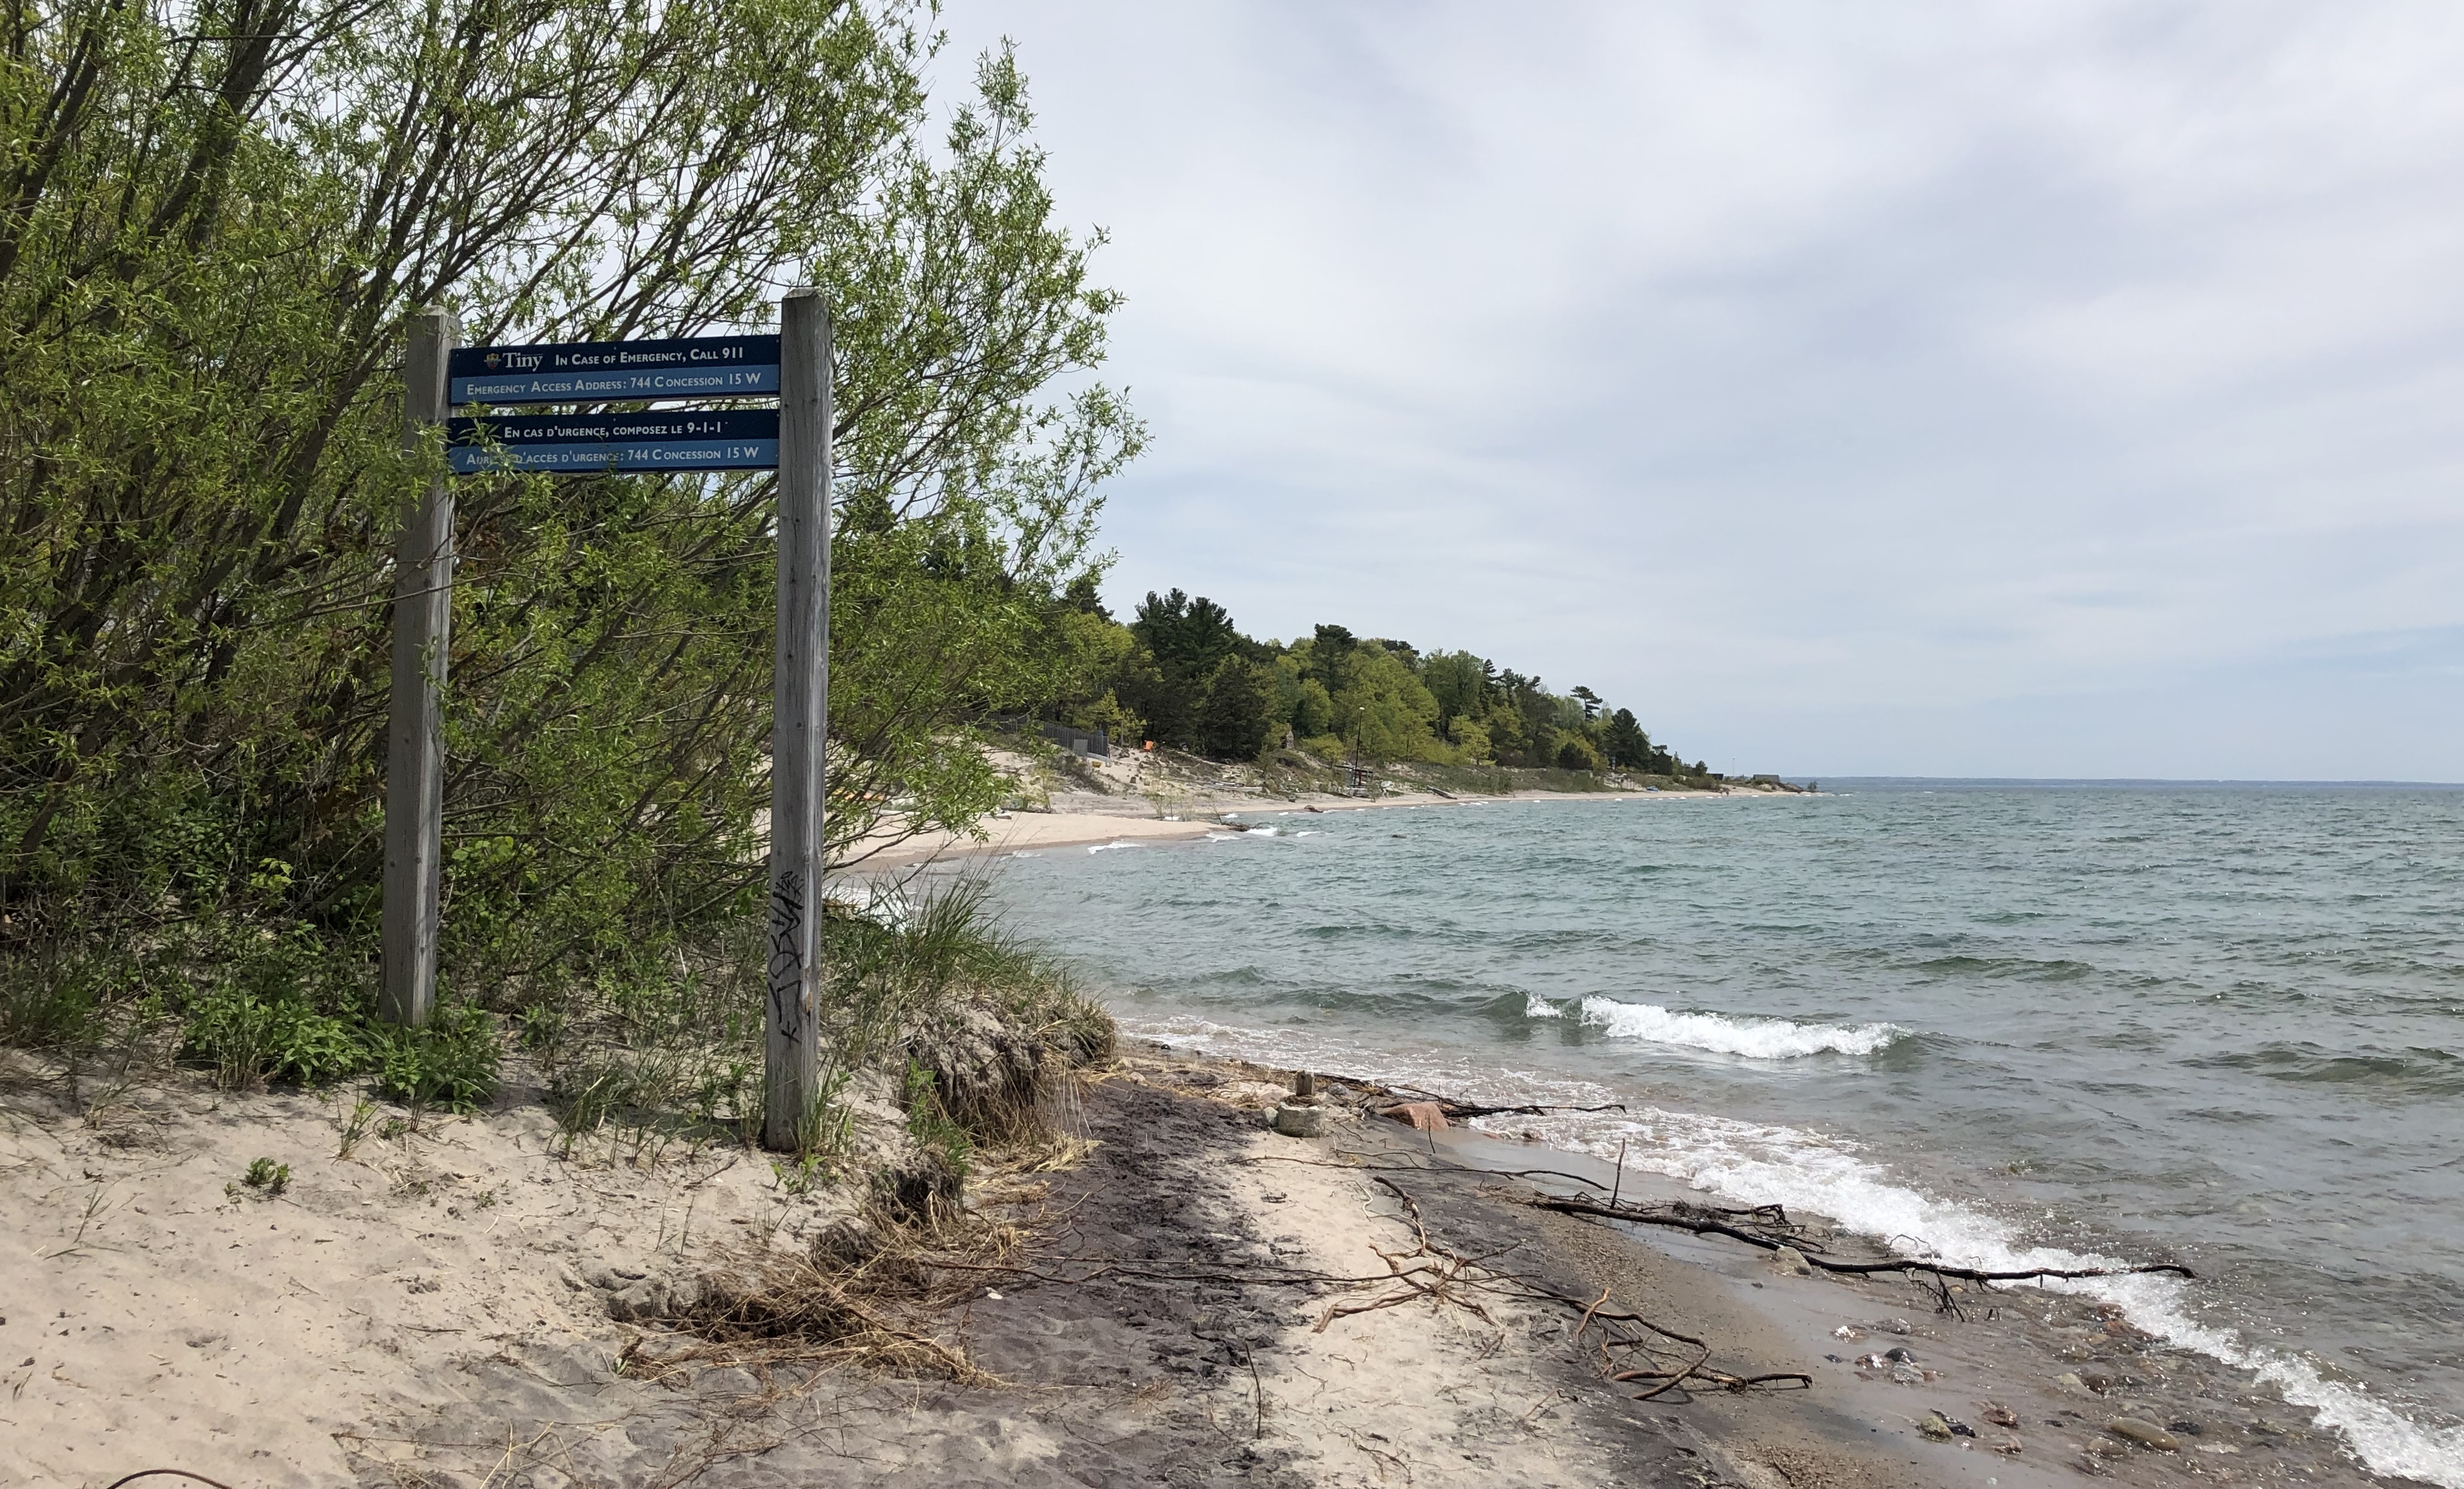 Georgian Bay water levels to keep rising: report - My